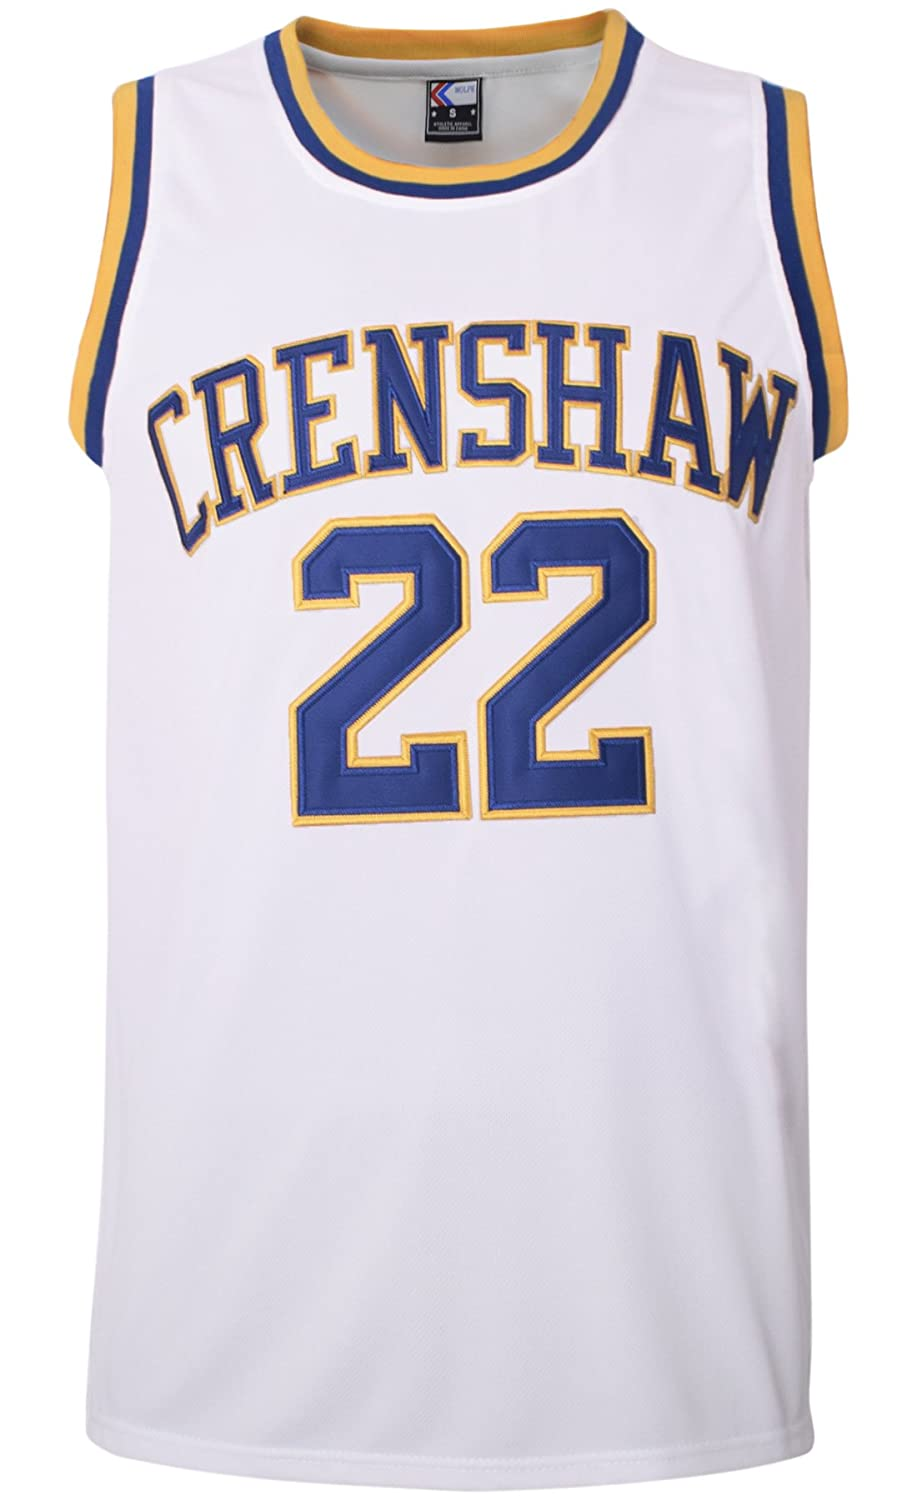 MOLPE McCall 22 Crenshaw Basketball Jersey S-XXXL White, 90S Hip Hop  Clothing for Party, 2-Layer Stitched Letters and Numbers